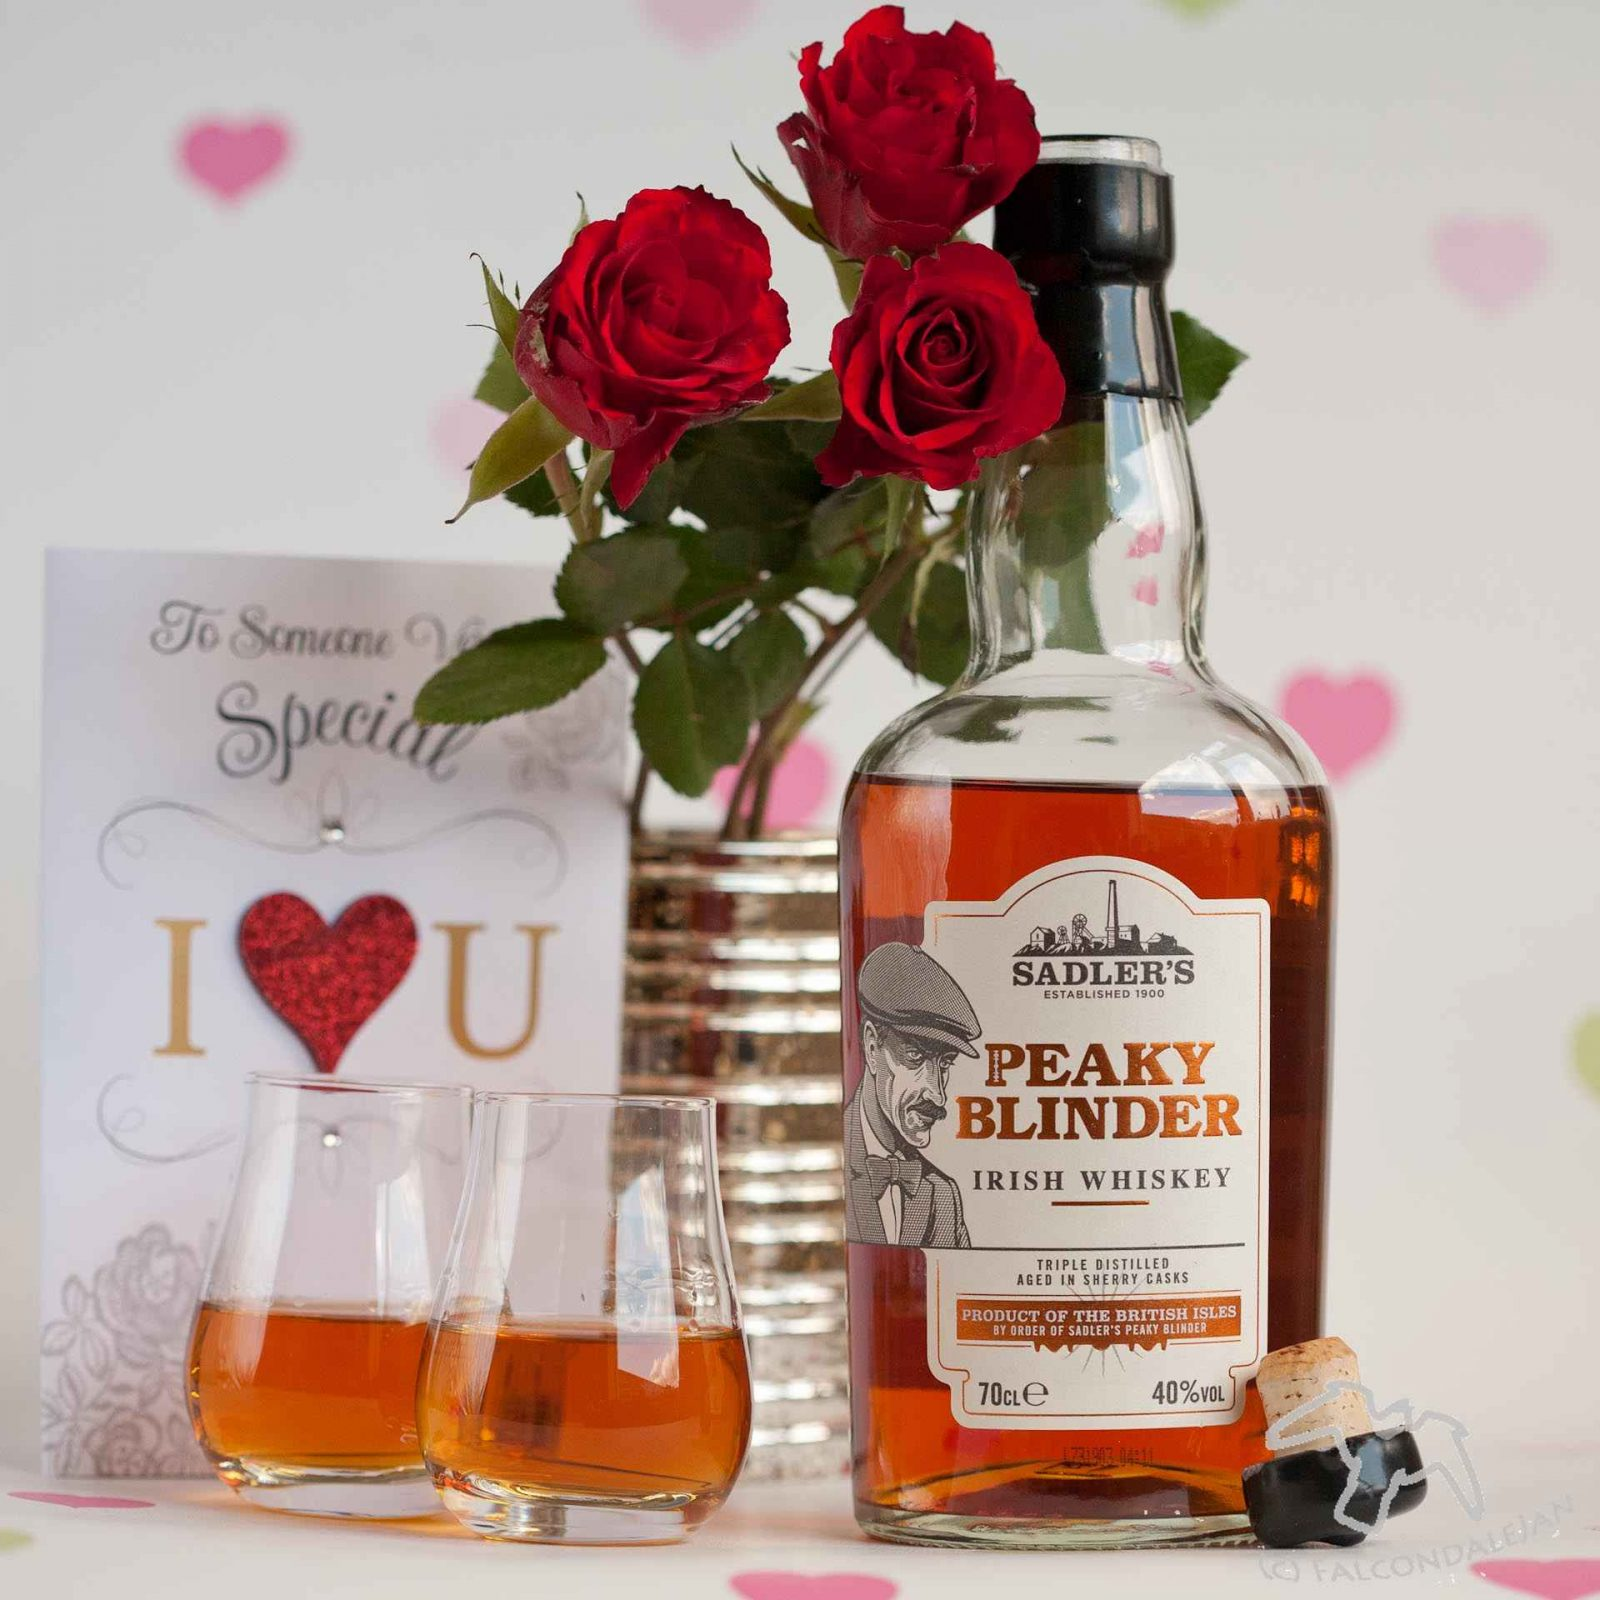 Peaky Blinder Irish Whiskey in glasses with a Valentine's card and roses. Boozy Valentine's Gift Guide and Drinks Review on Falcondale Life blog. Unusual alcohol and gifts for drinkers on Valentine's day. Get something for him or her which is more interesting that just chocolate and wine. On test: Liqueurs, whisky, brewing kit, drinking game. Boozy gifts reviewed by FalcondaleJan.